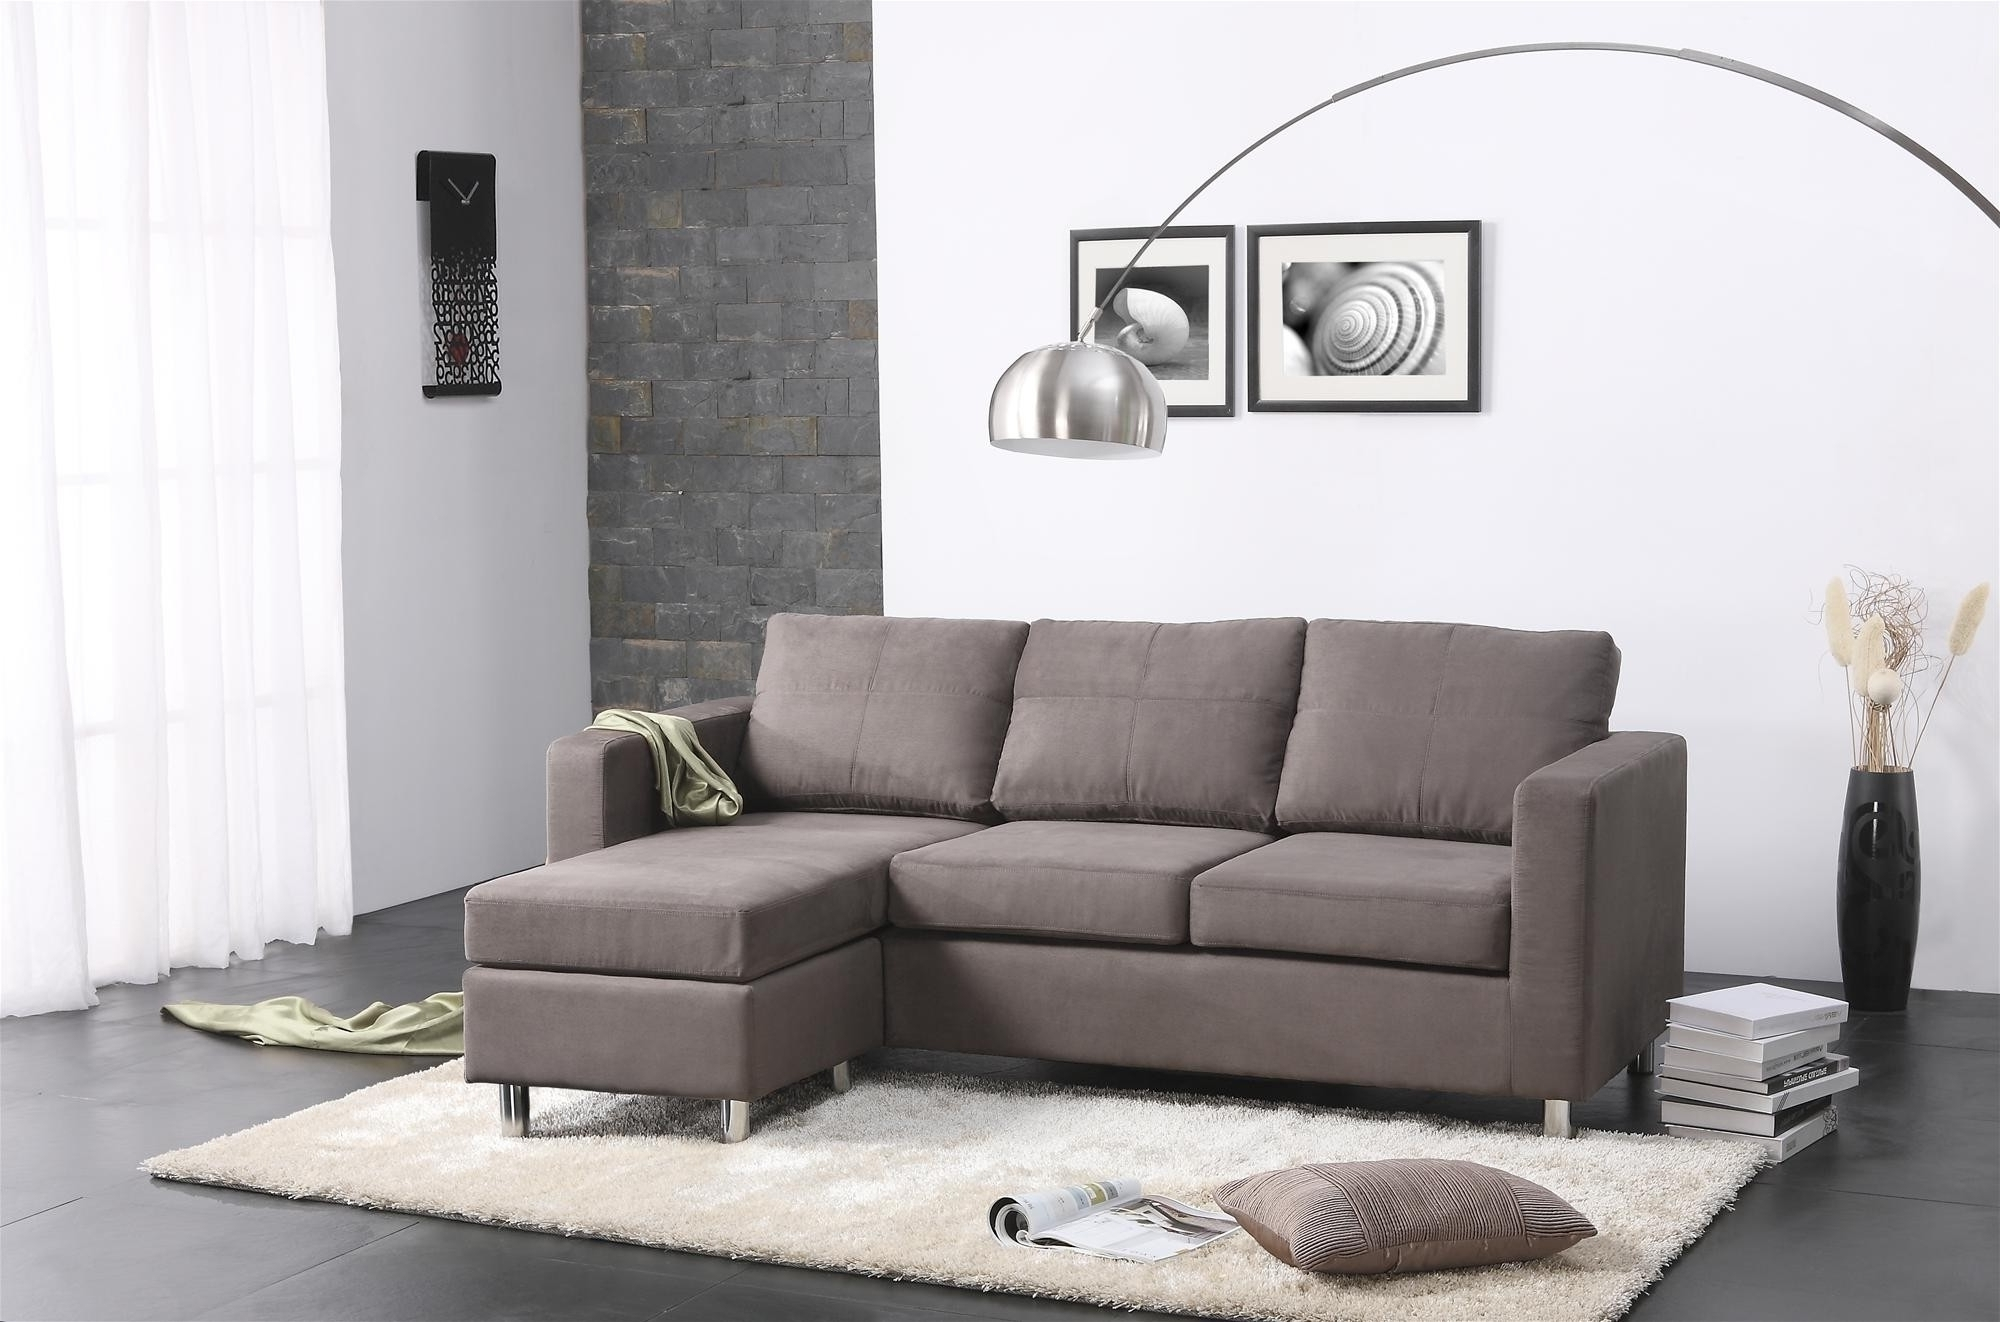 Trendy Sectional Sofas For Condos For Incredible Condo Sectional Sofa – Mediasupload (View 14 of 15)